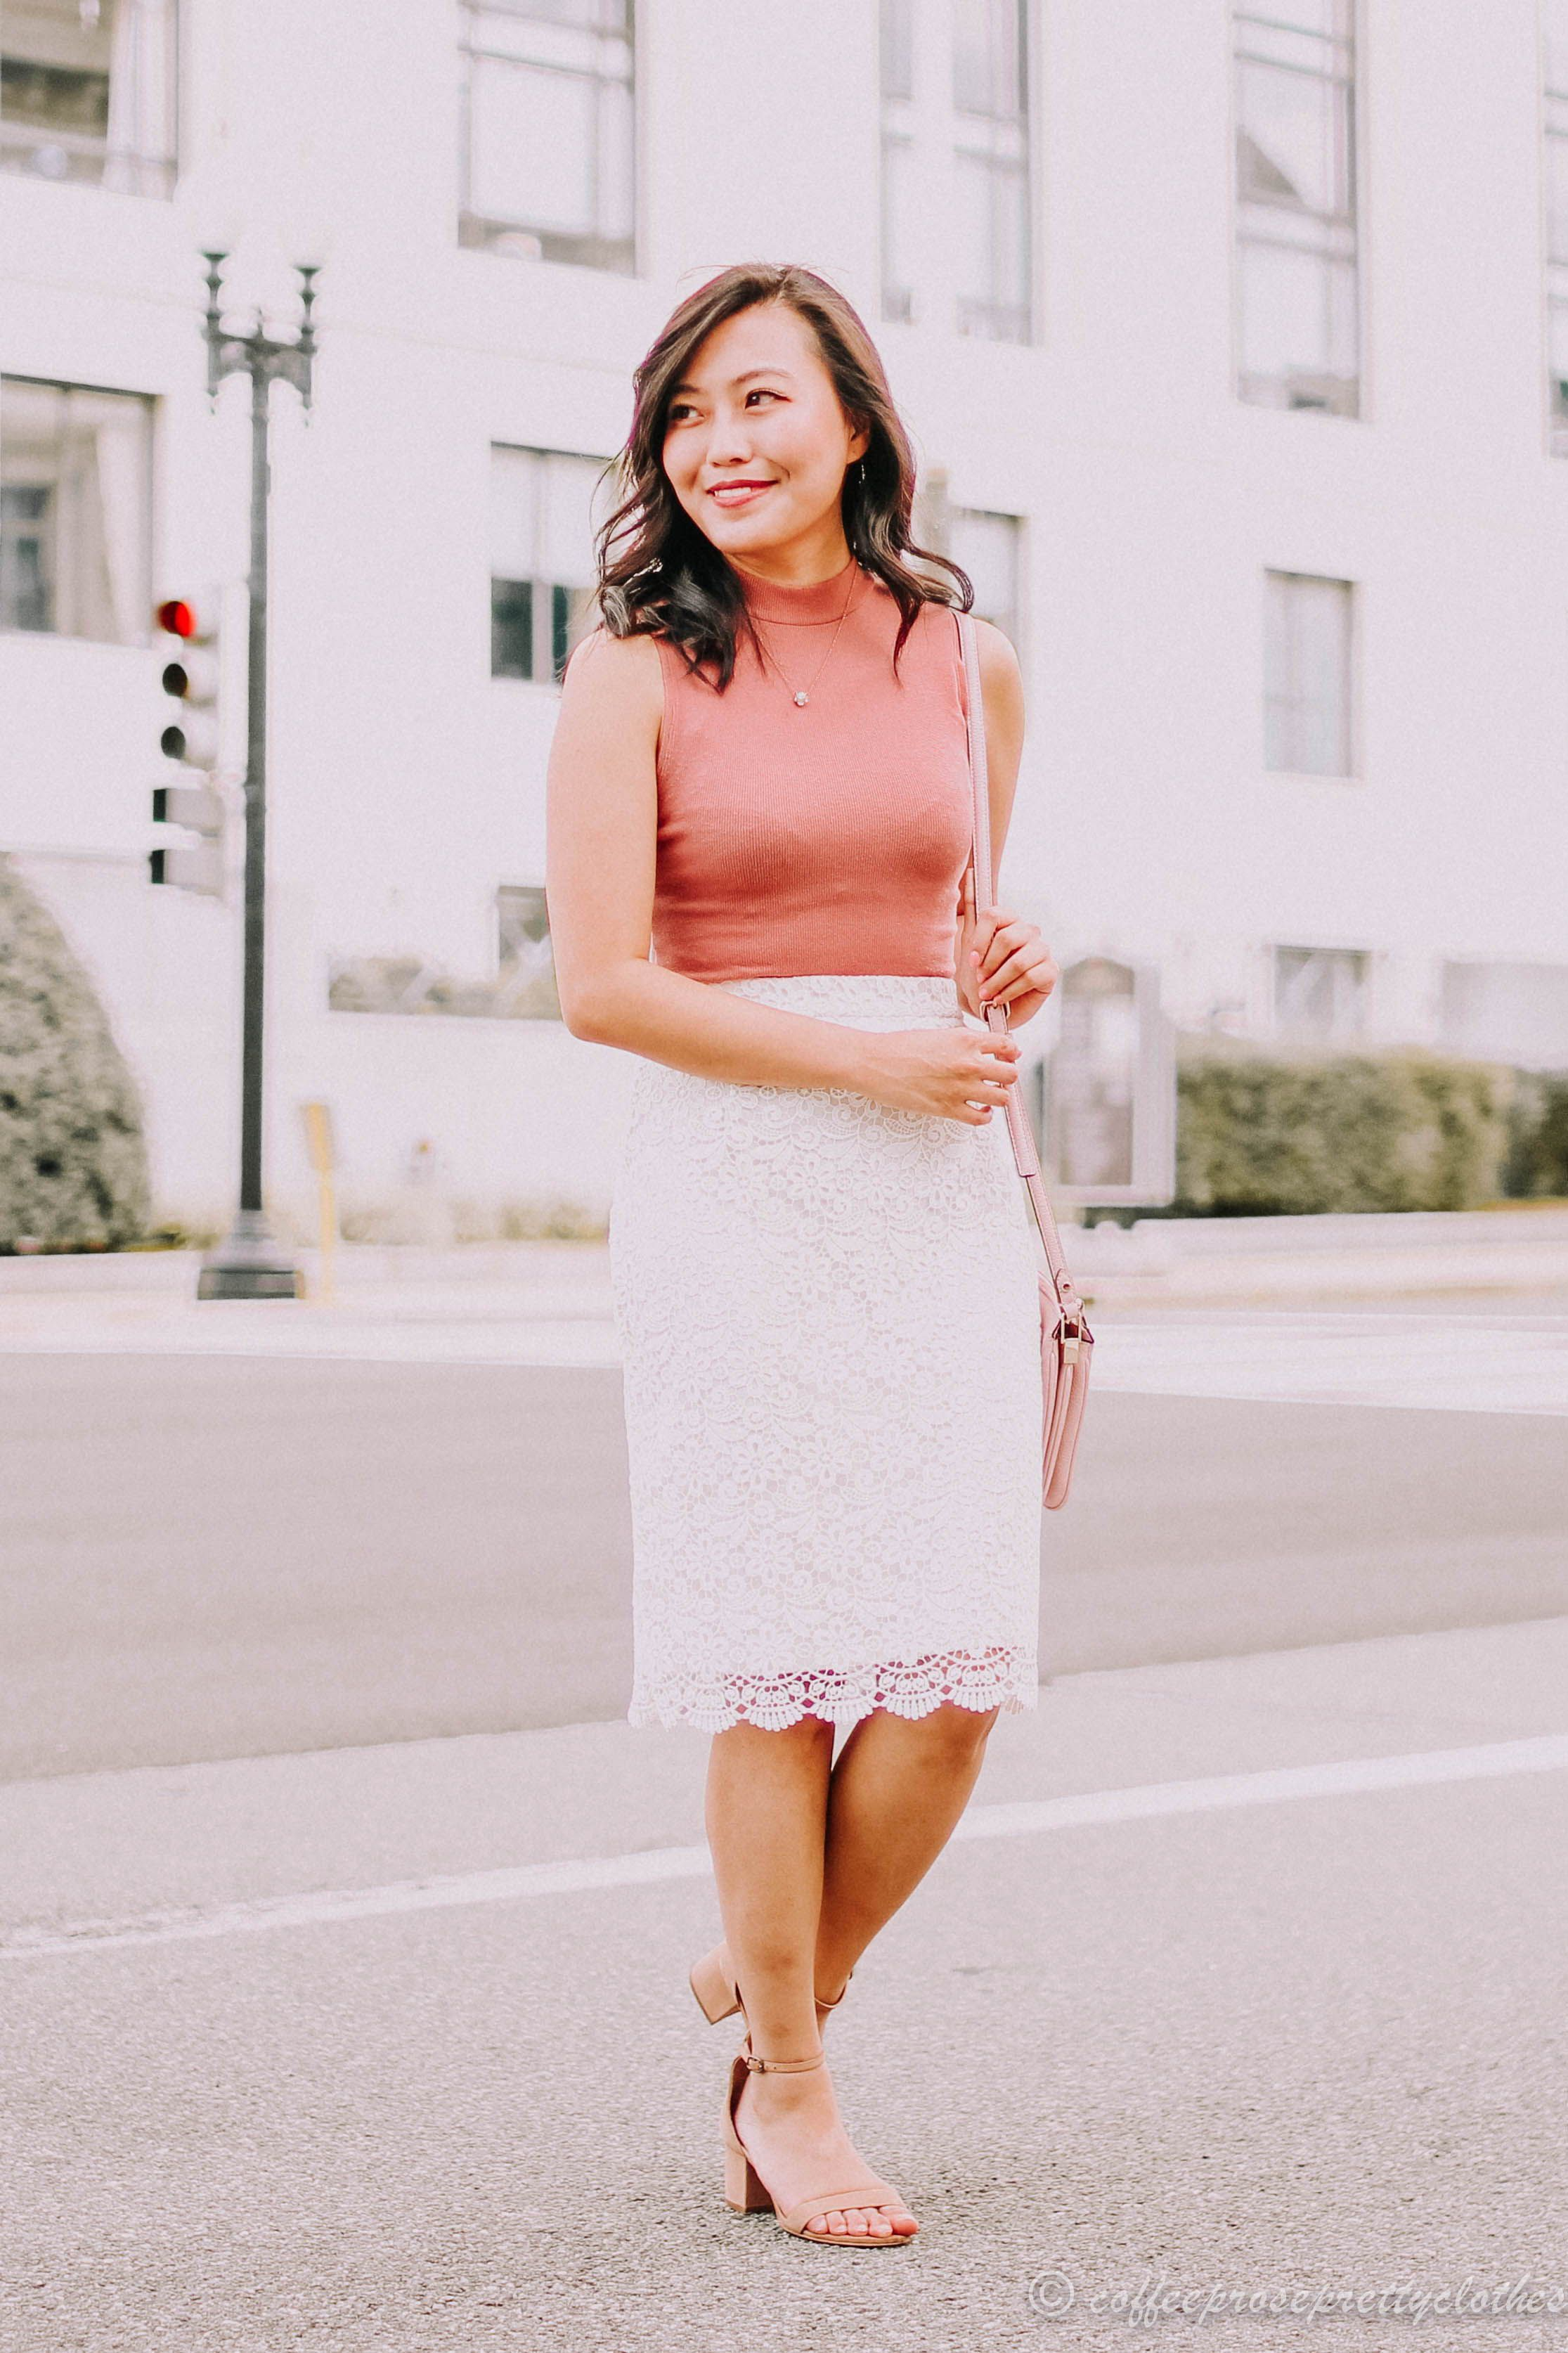 Lace bodysuit styles  Lace pencil skirt and a rose bodysuit  a great work or date outfit